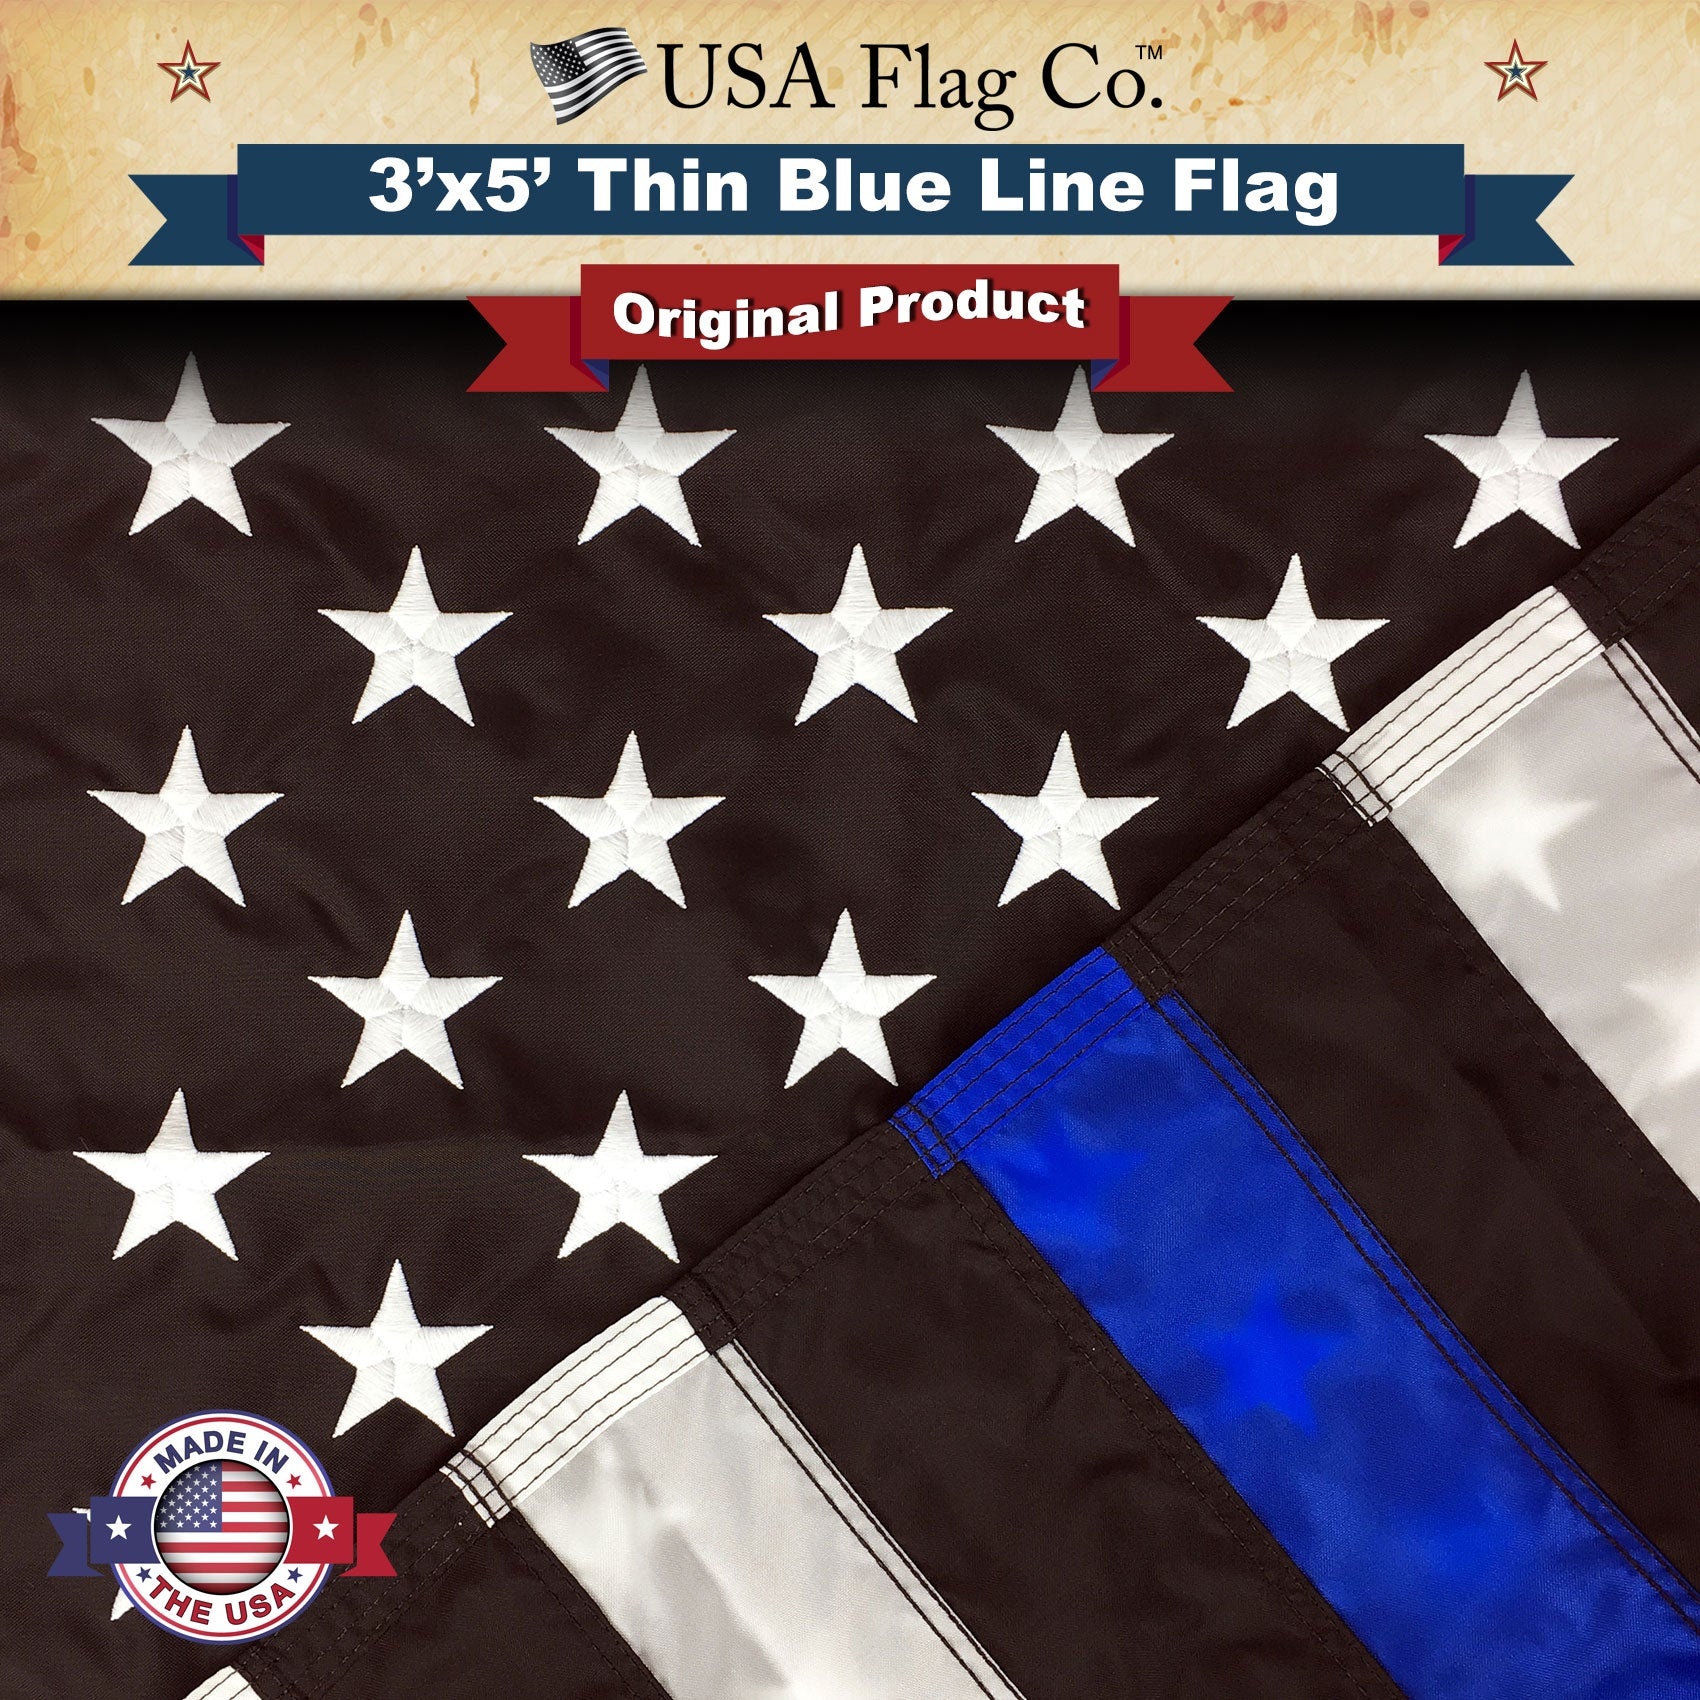 5ff321afcb9 Thin Blue Line American Flag 3x5 Ft. Embroidered Stars   Sewn ...